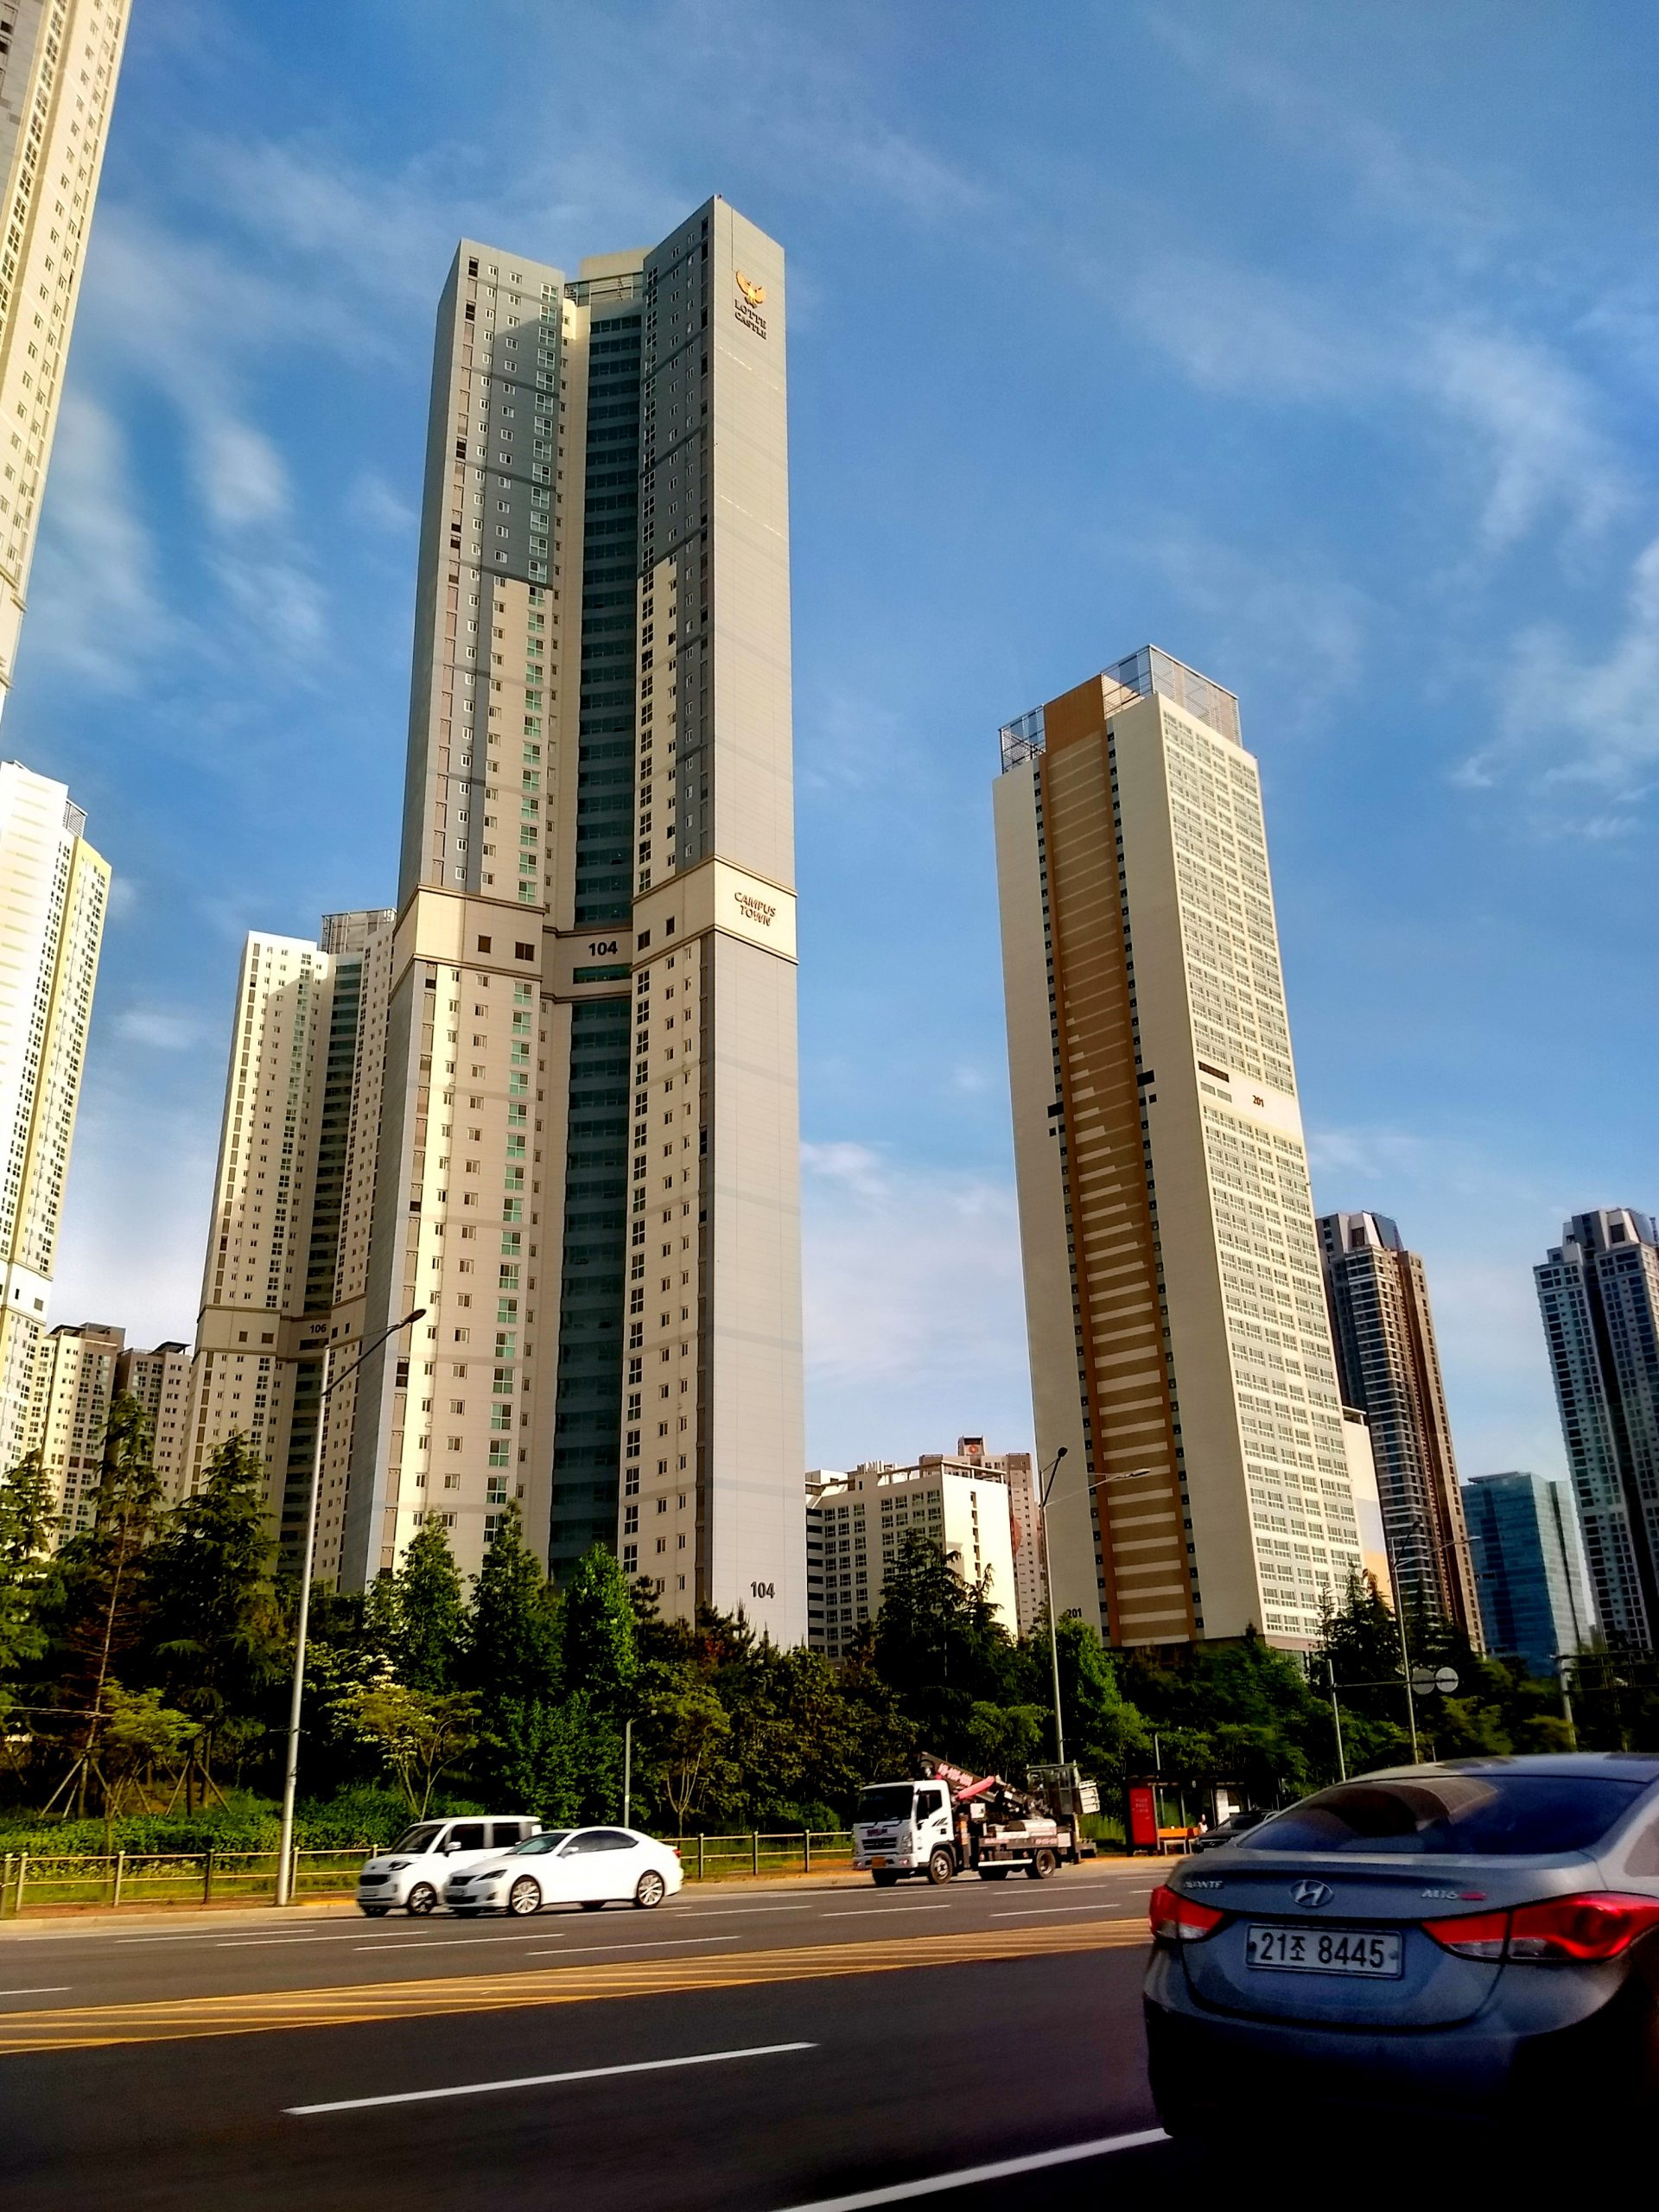 Tall buildings of South Korea